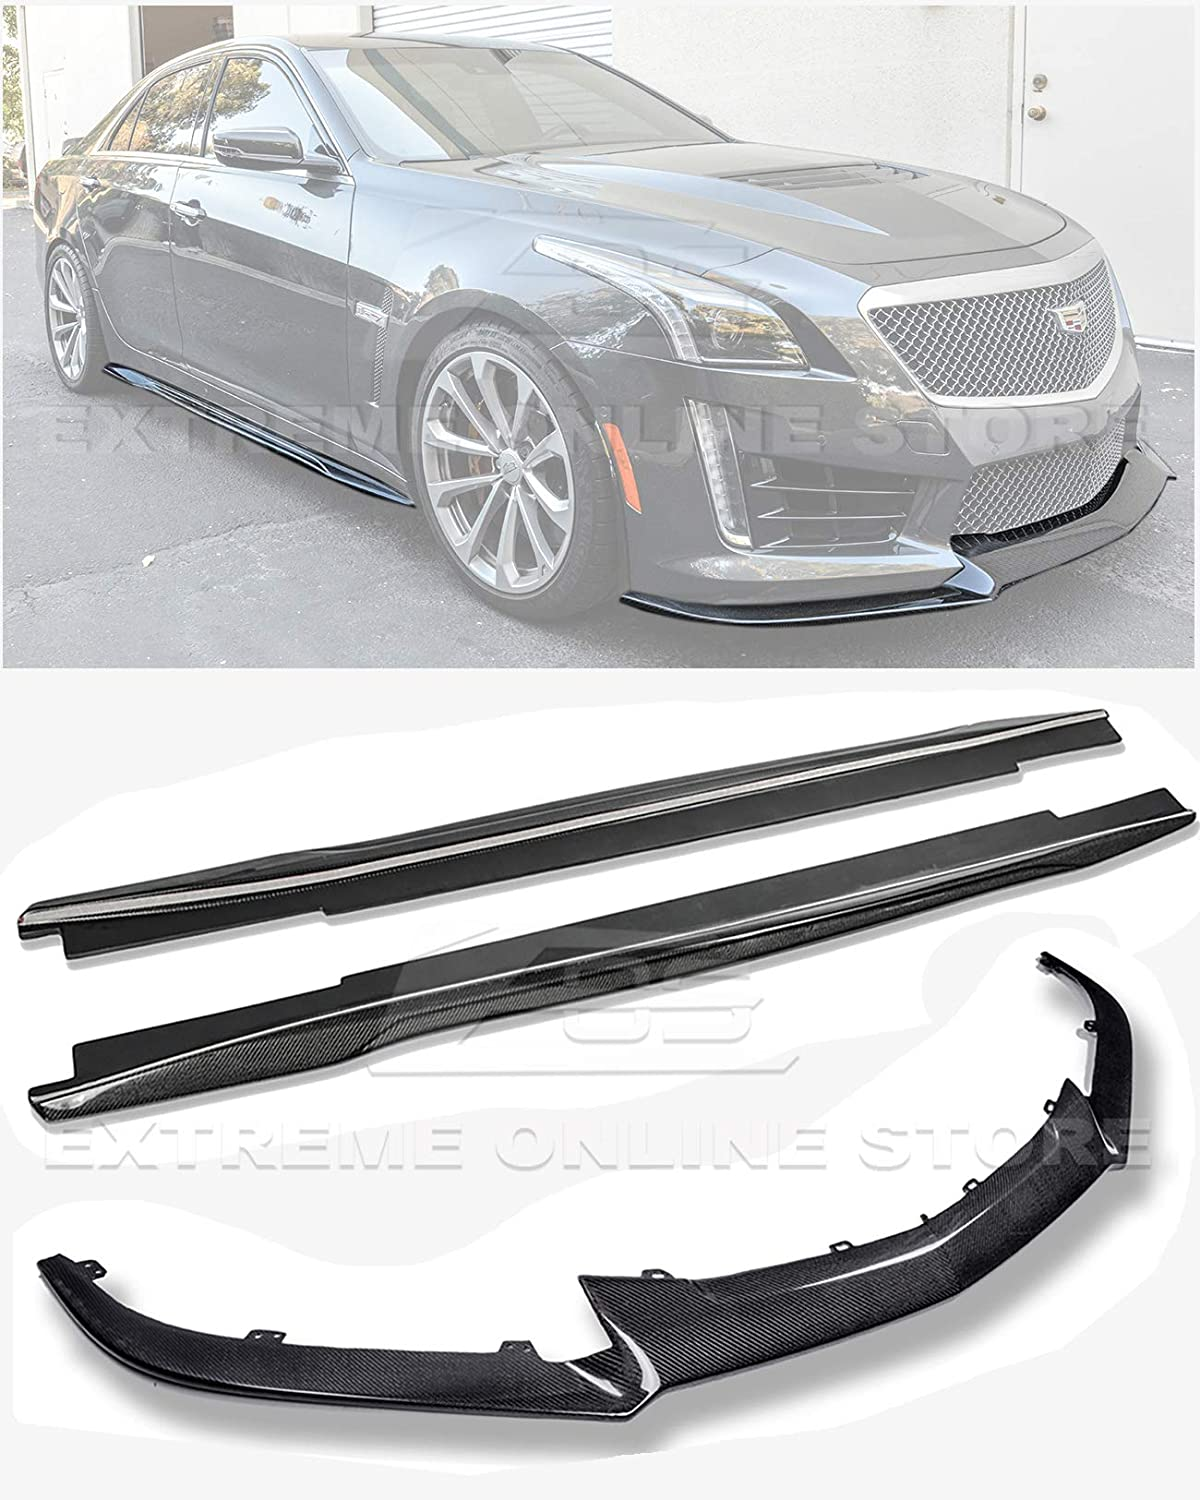 EOS Carbon Package Style Carbon Fiber Rear Bumper Trunk Lid Wing Spoiler Extreme Online Store for 2016-2019 Cadillac CTS-V Models